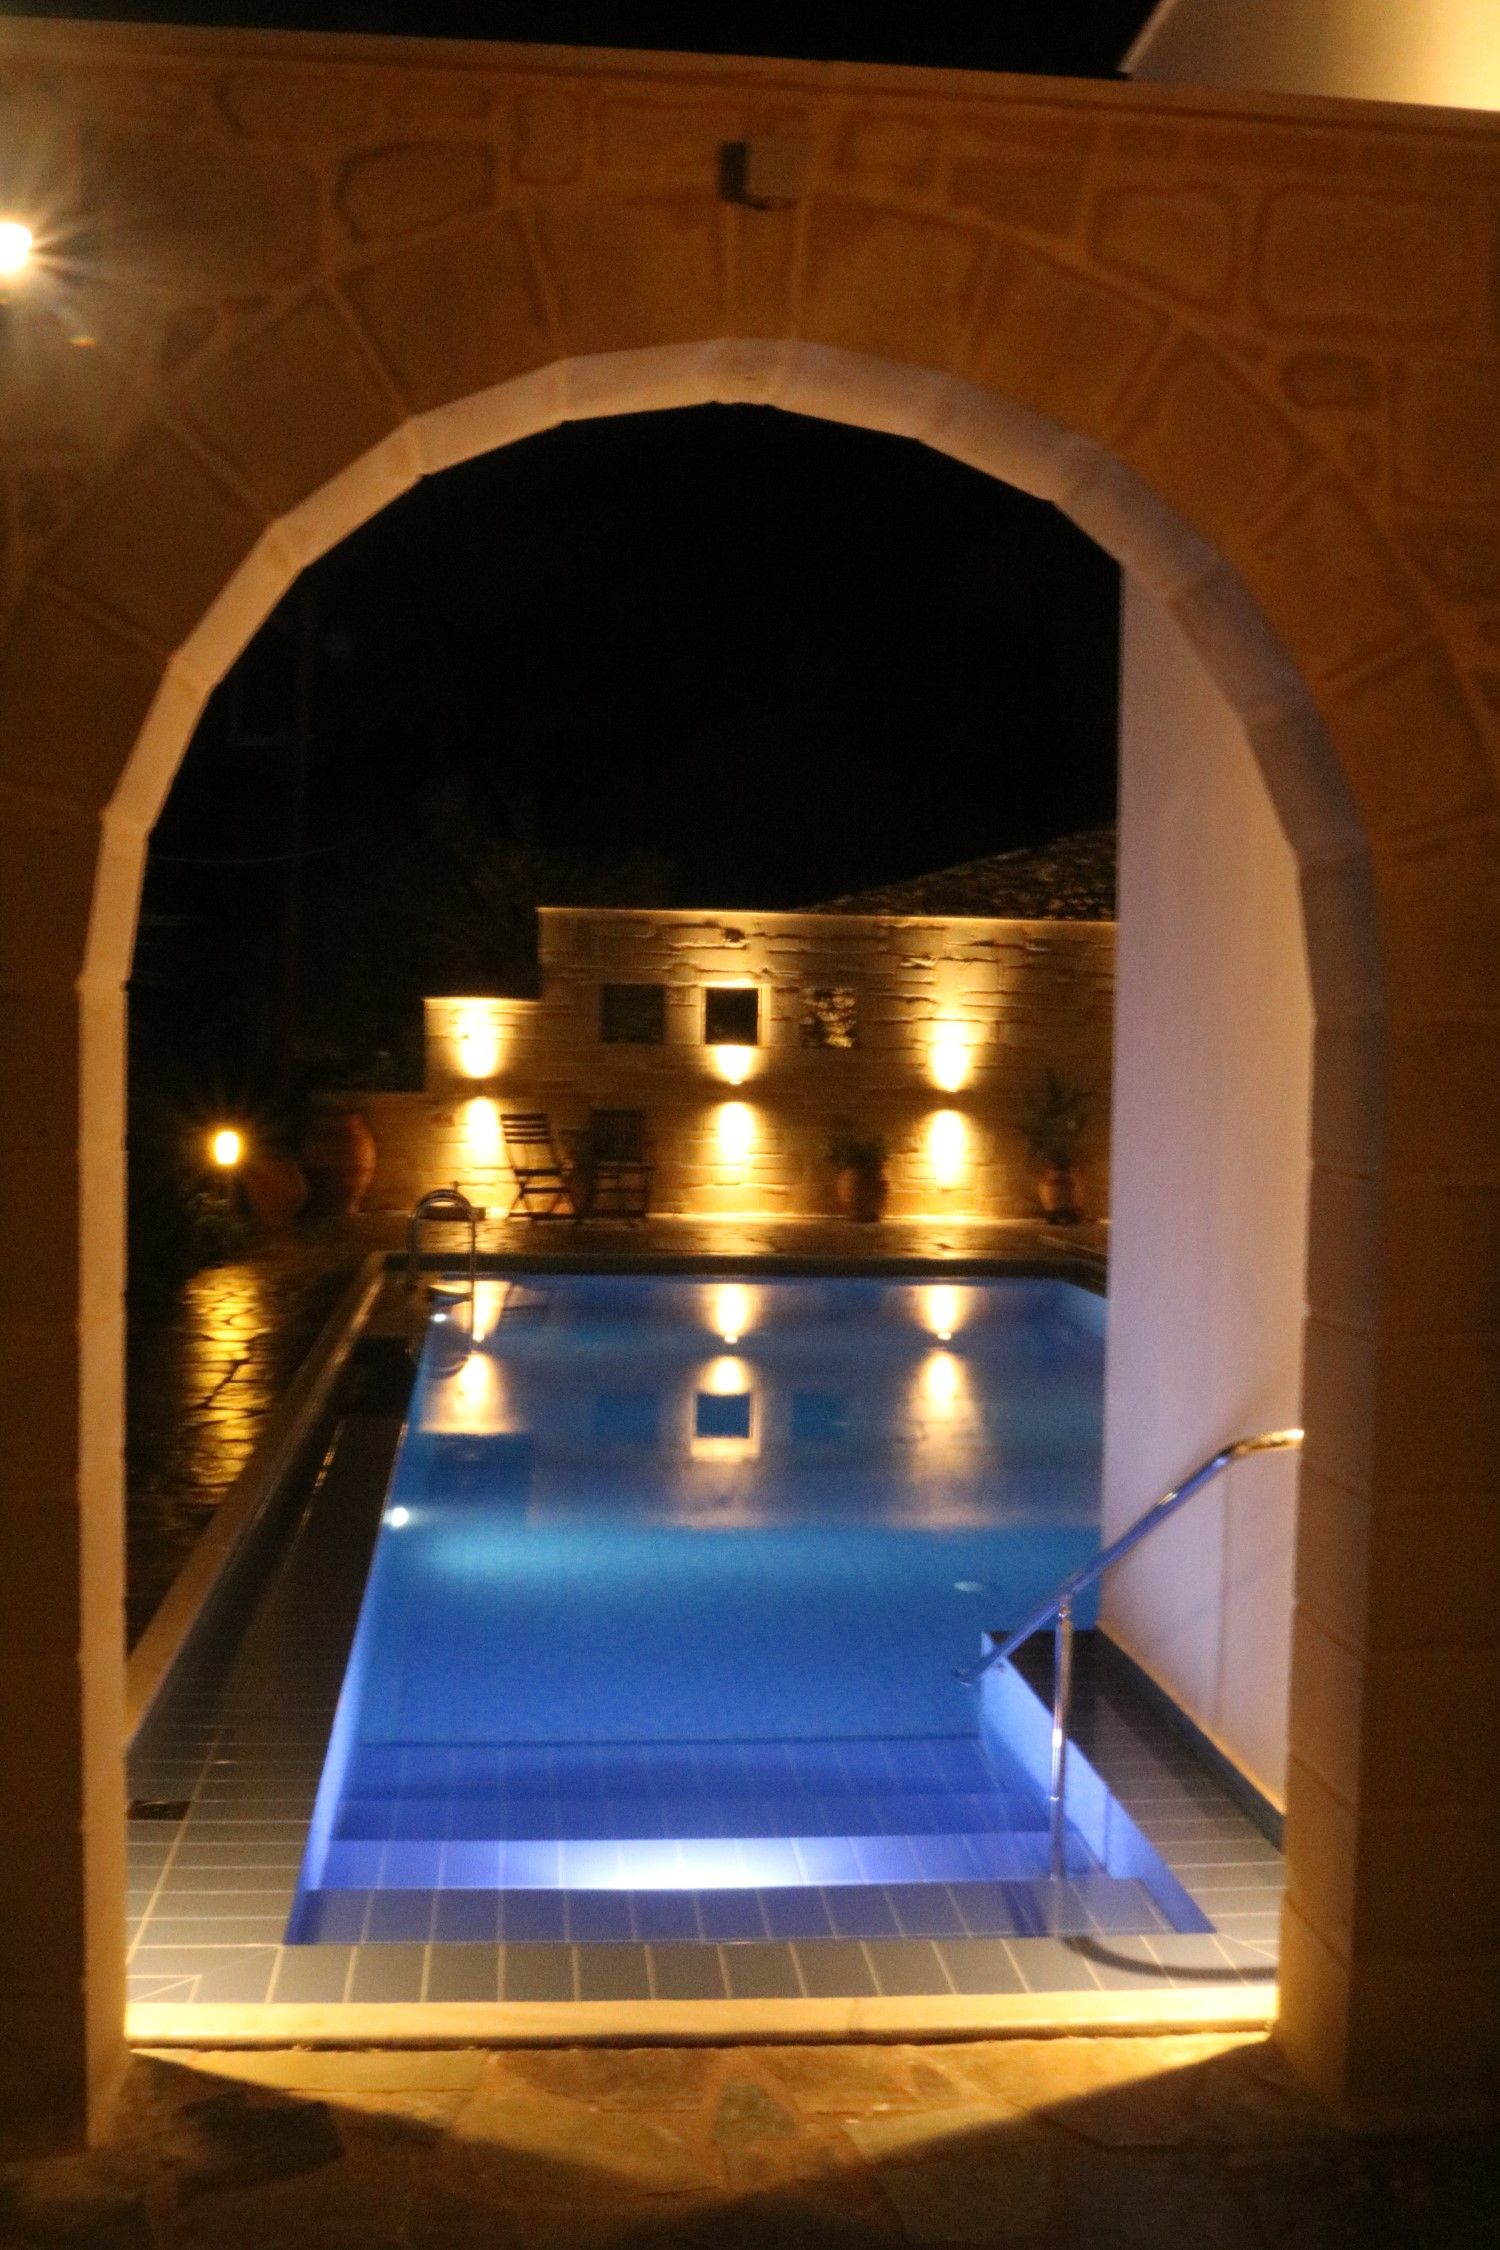 Pool arch by night